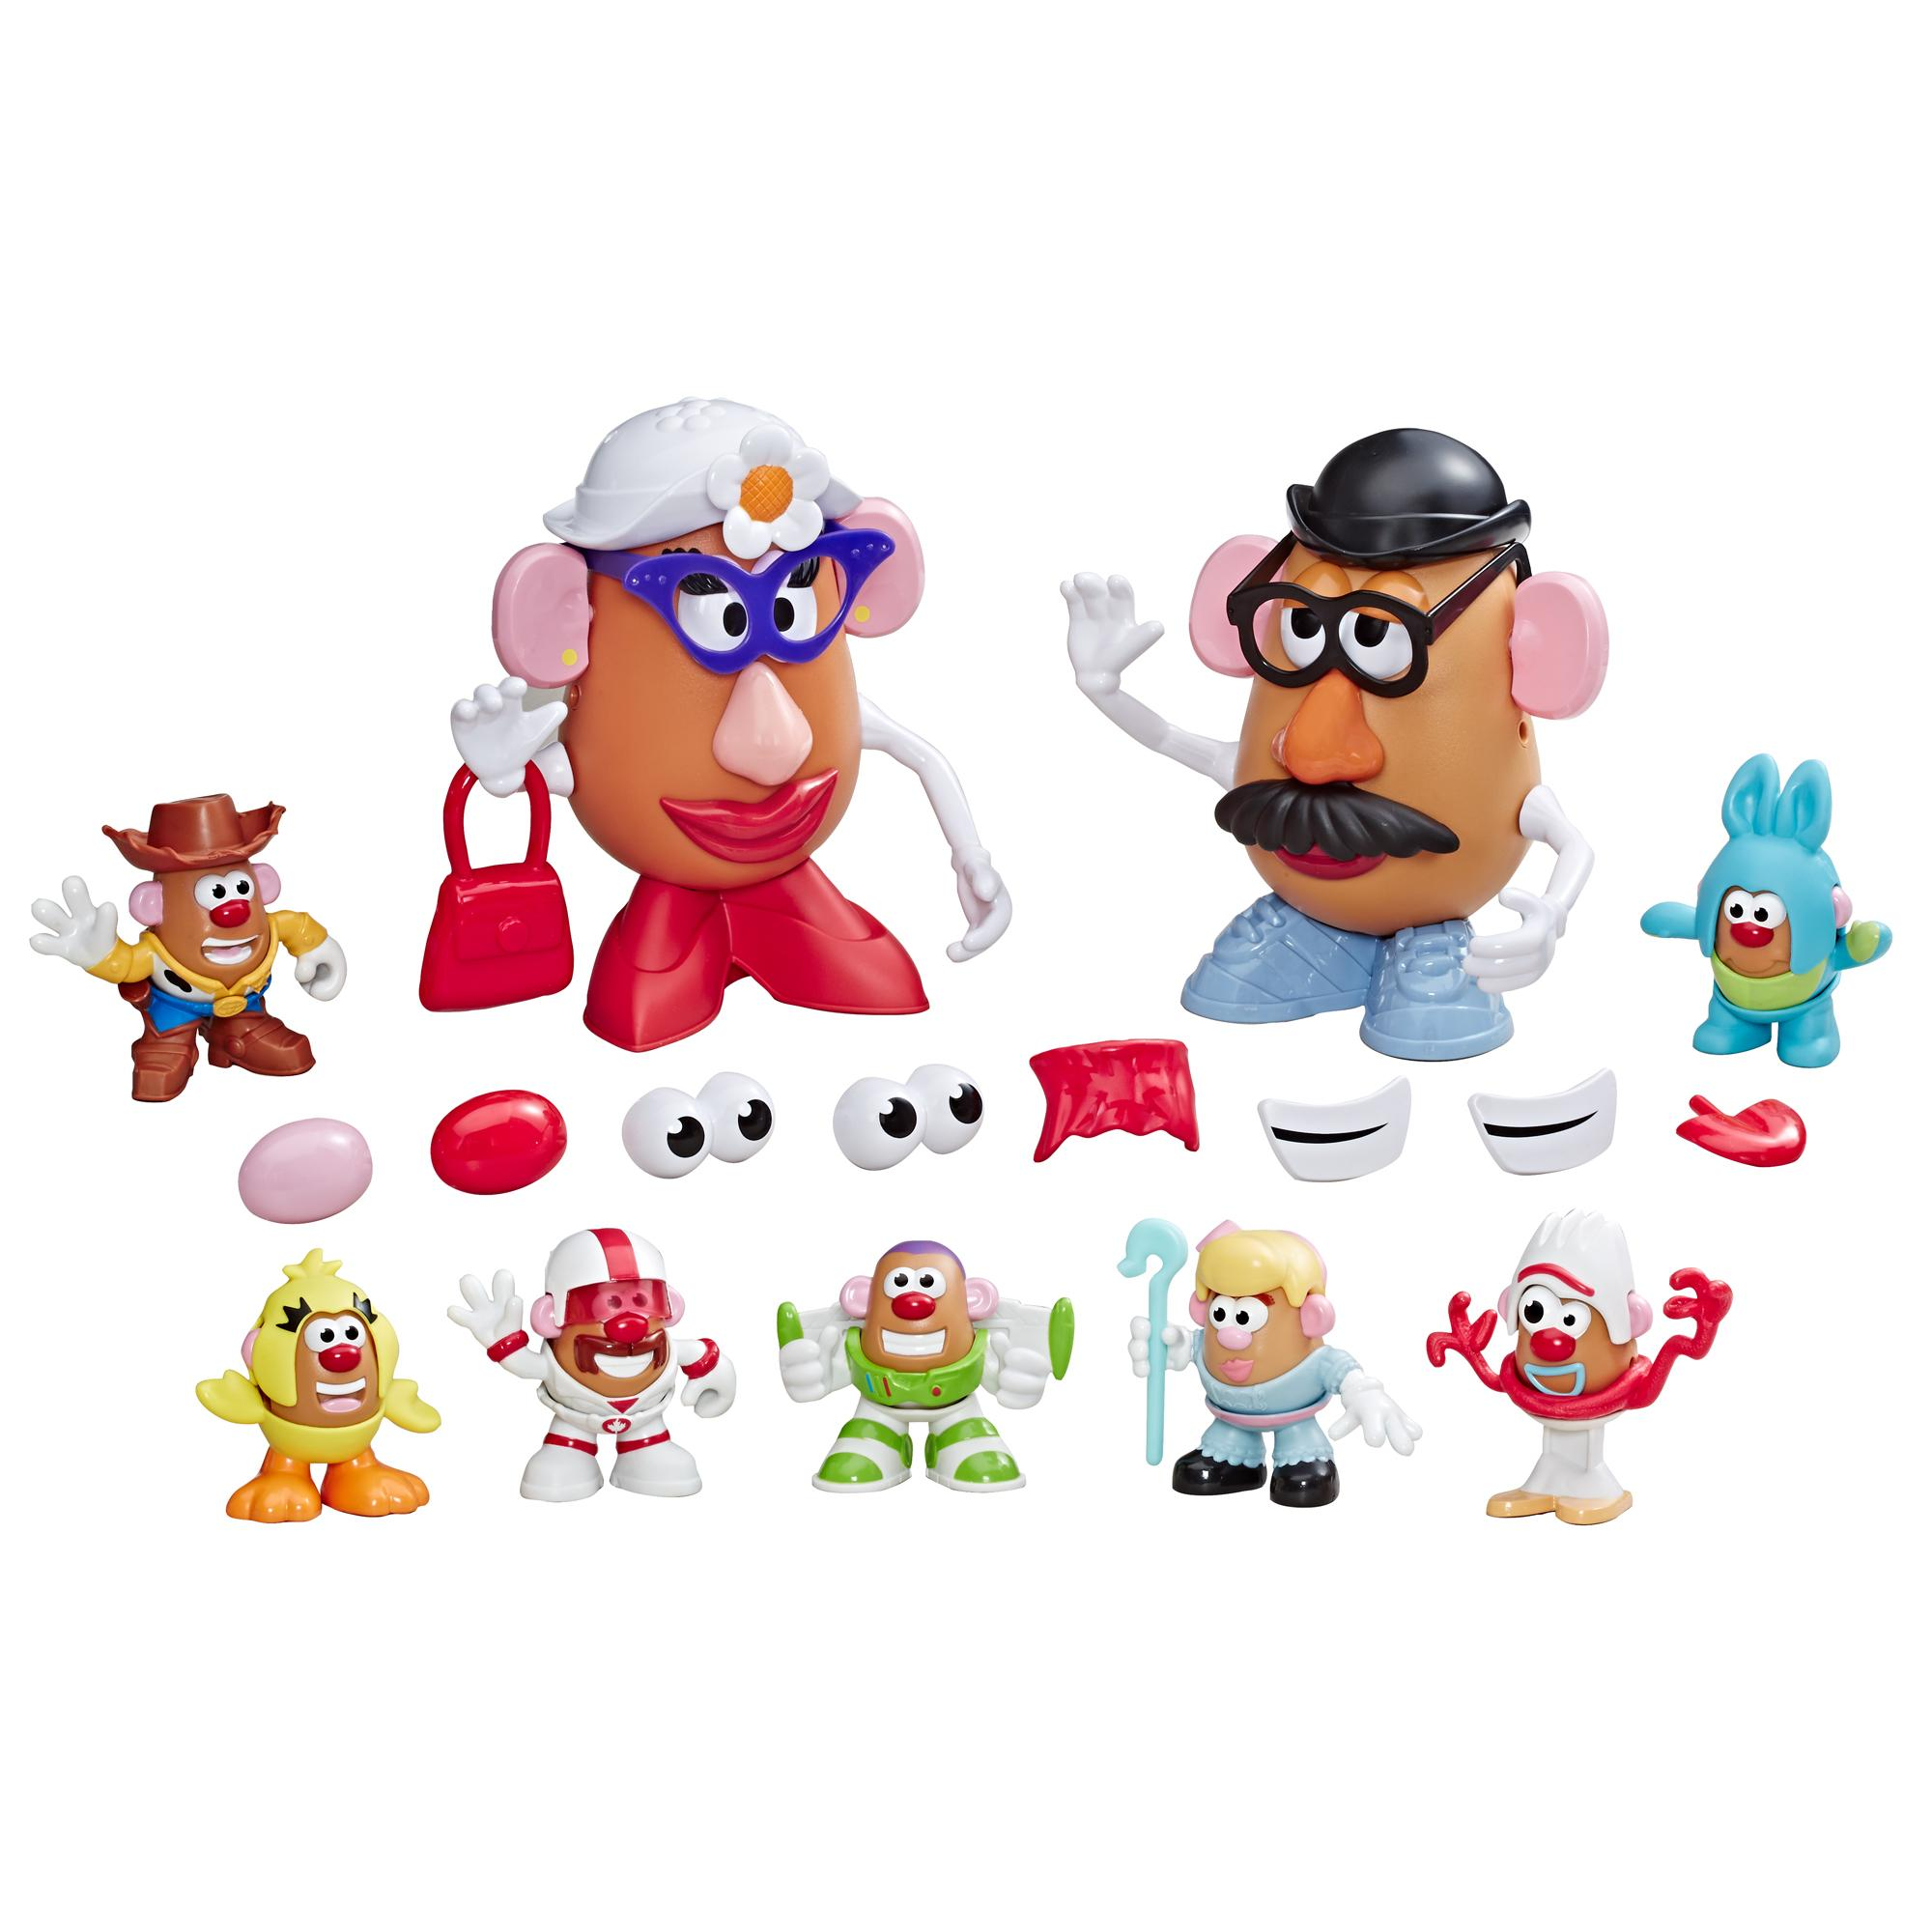 Mr. Potato Head Disney/Pixar Toy Story 4 Andy's Playroom Potato Pack